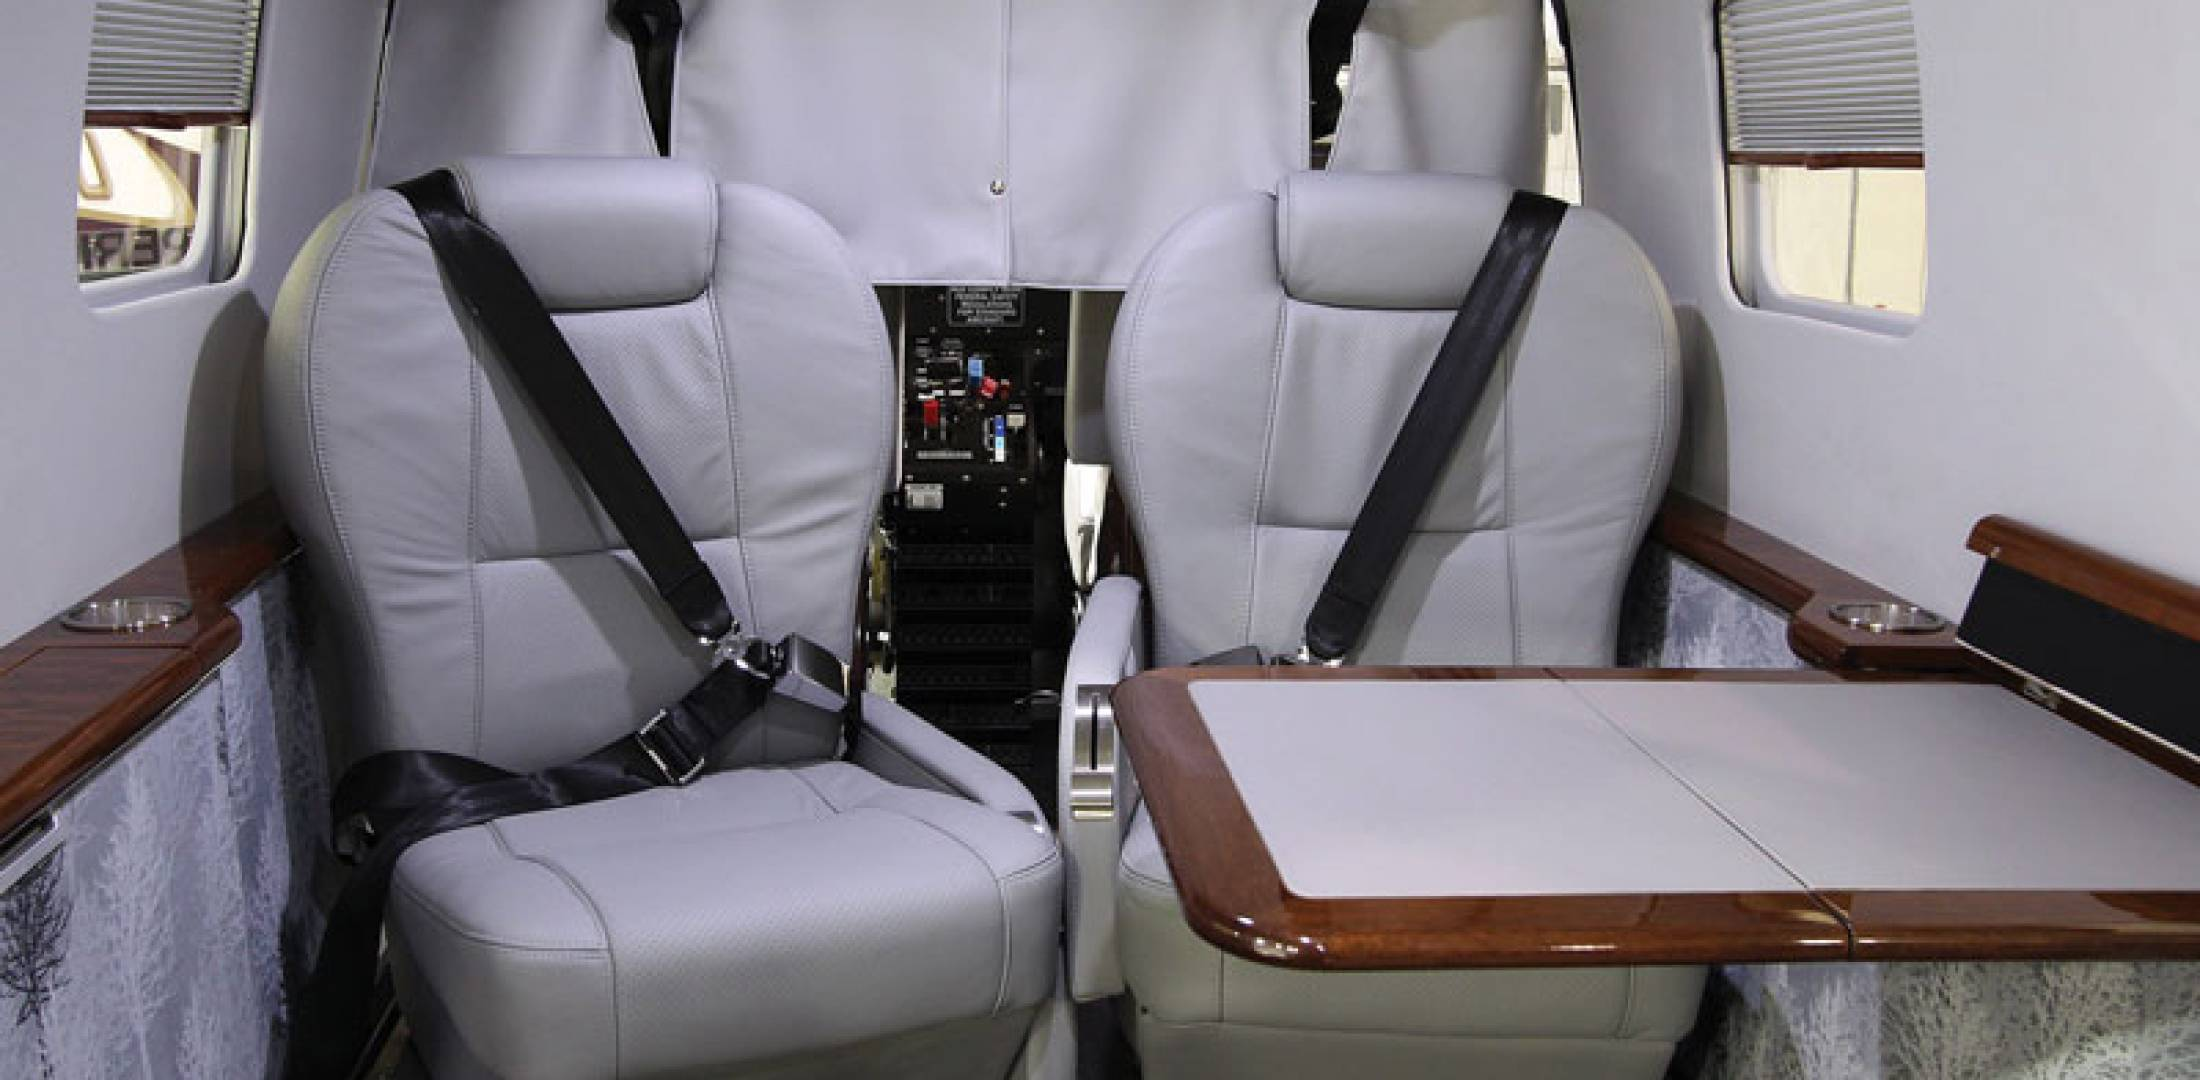 Quest Plans Executive Interior for Utility Kodiak   Business     The Quest Kodiak utility turboprop has gone upscale  sporting an executive  interior installed by Wipaire  The company is seeking input on additional  custom